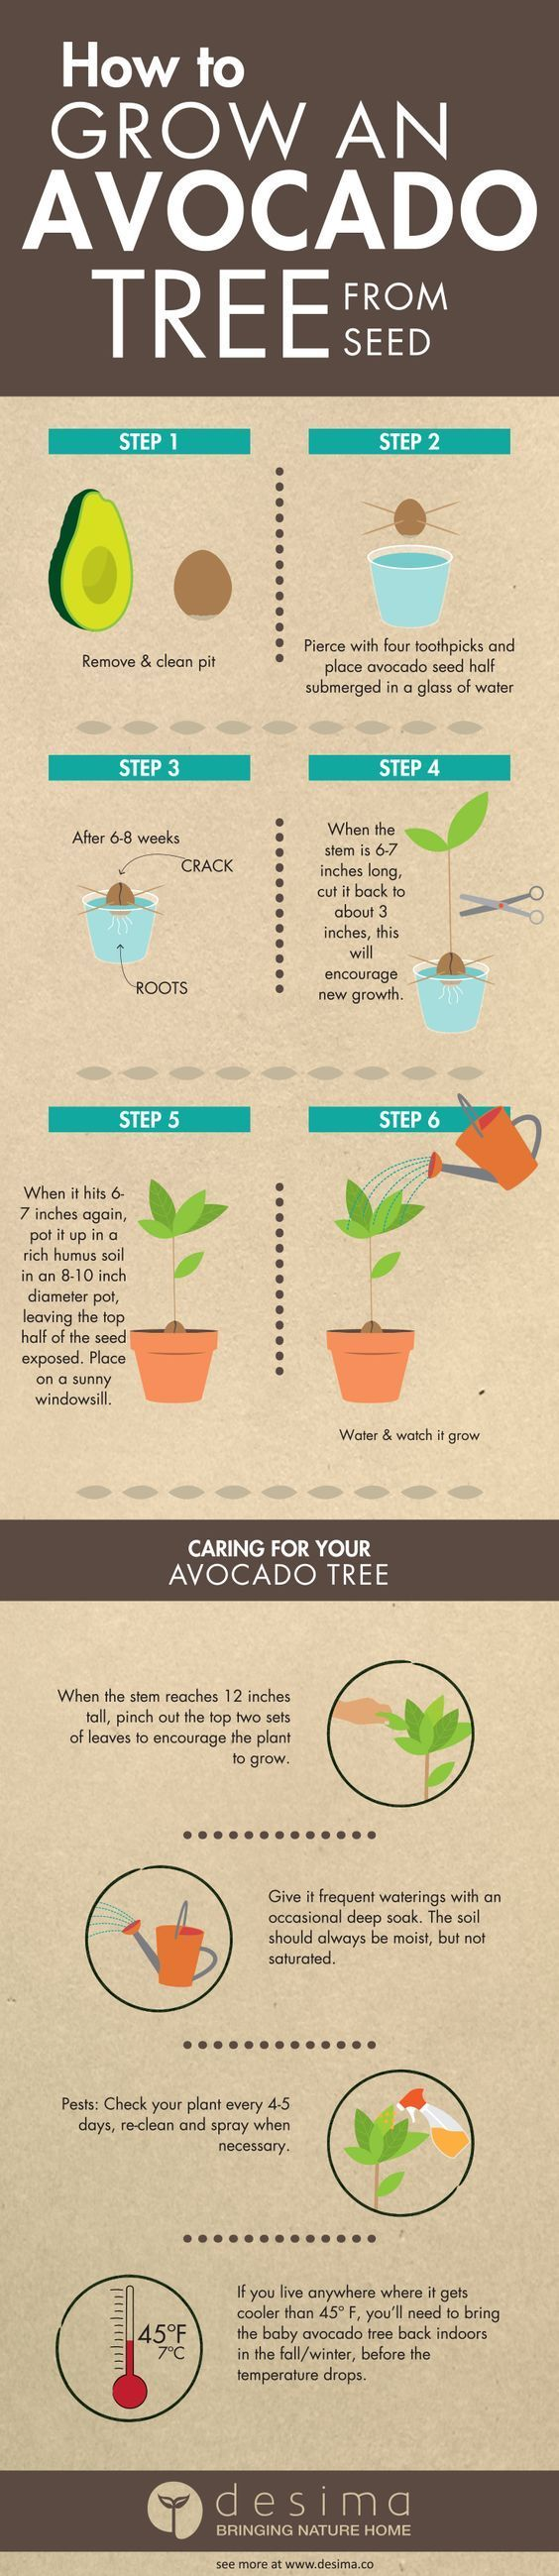 Grow Avocado From Seed It's Just So Easy | The WHOot